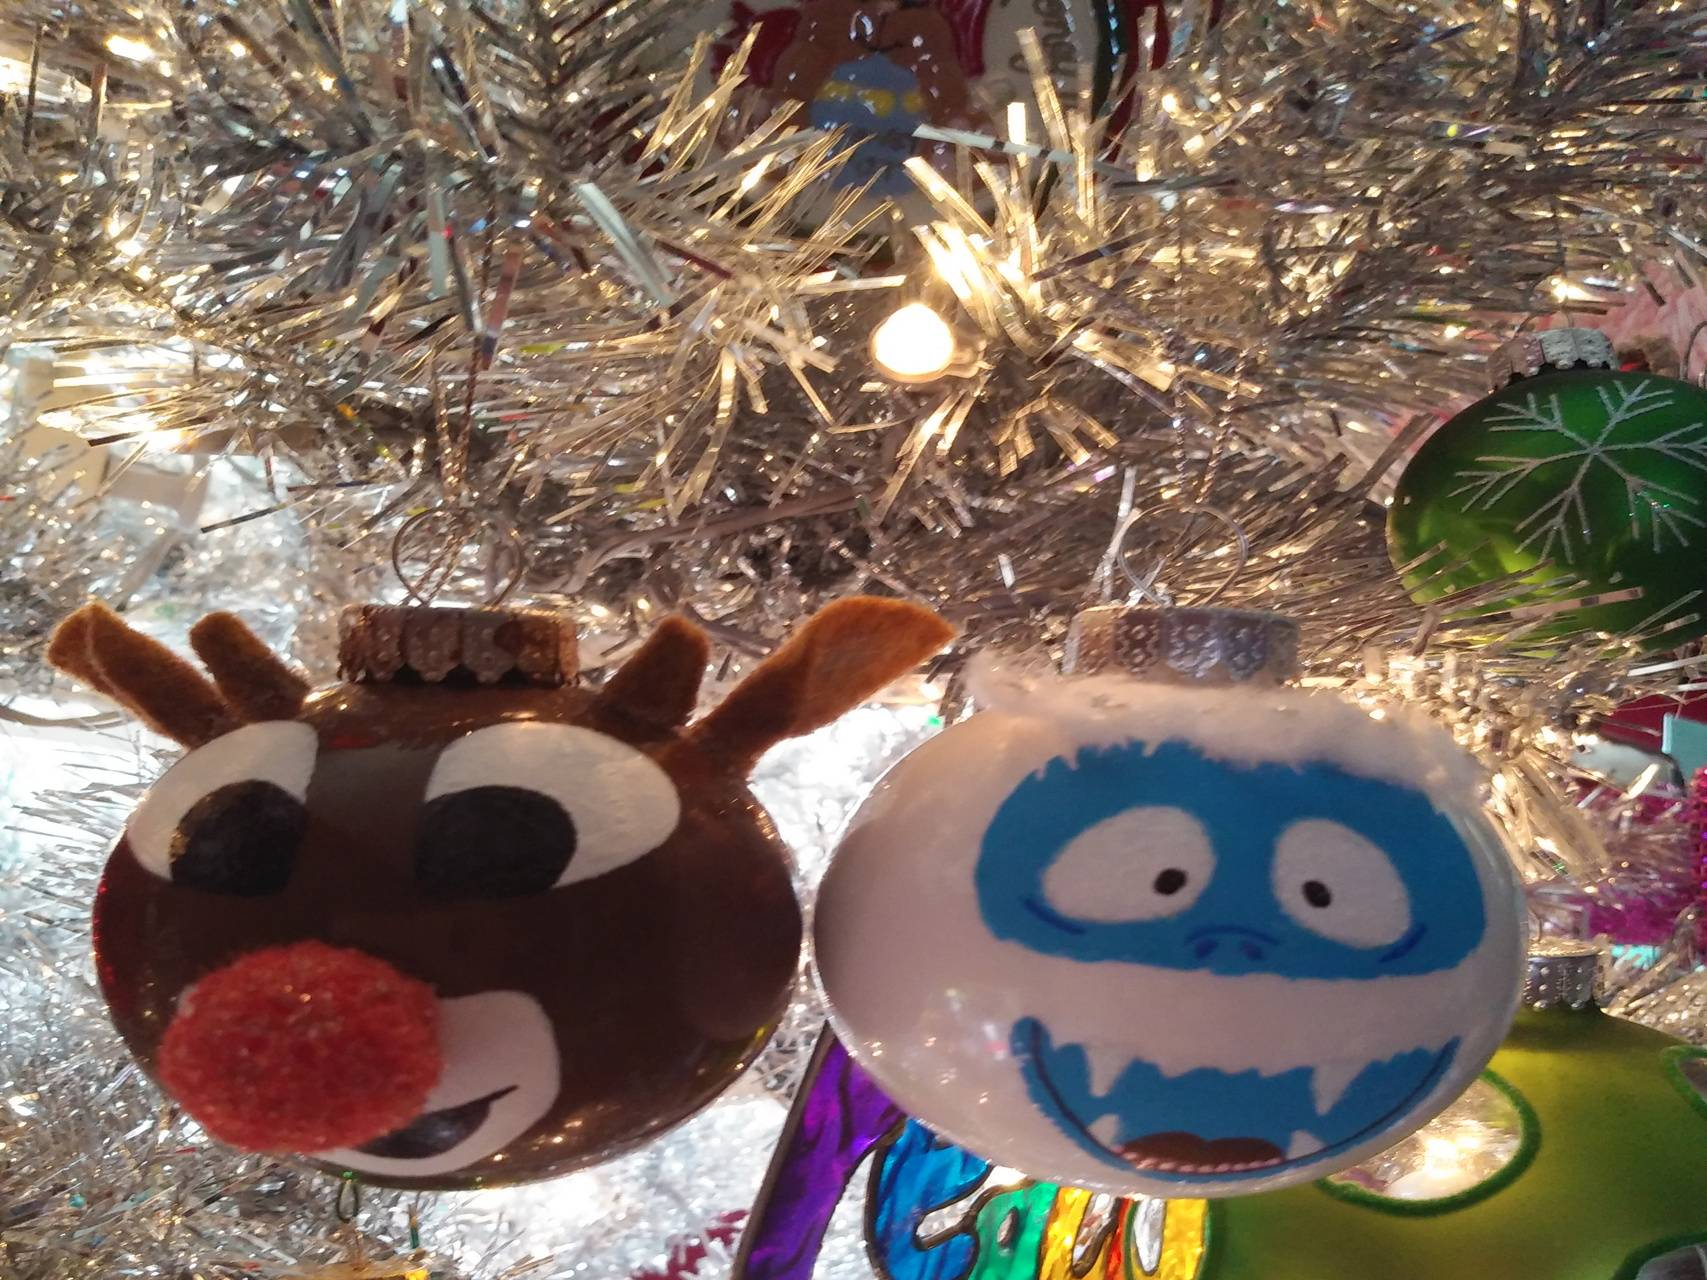 Rudolph and Bumble